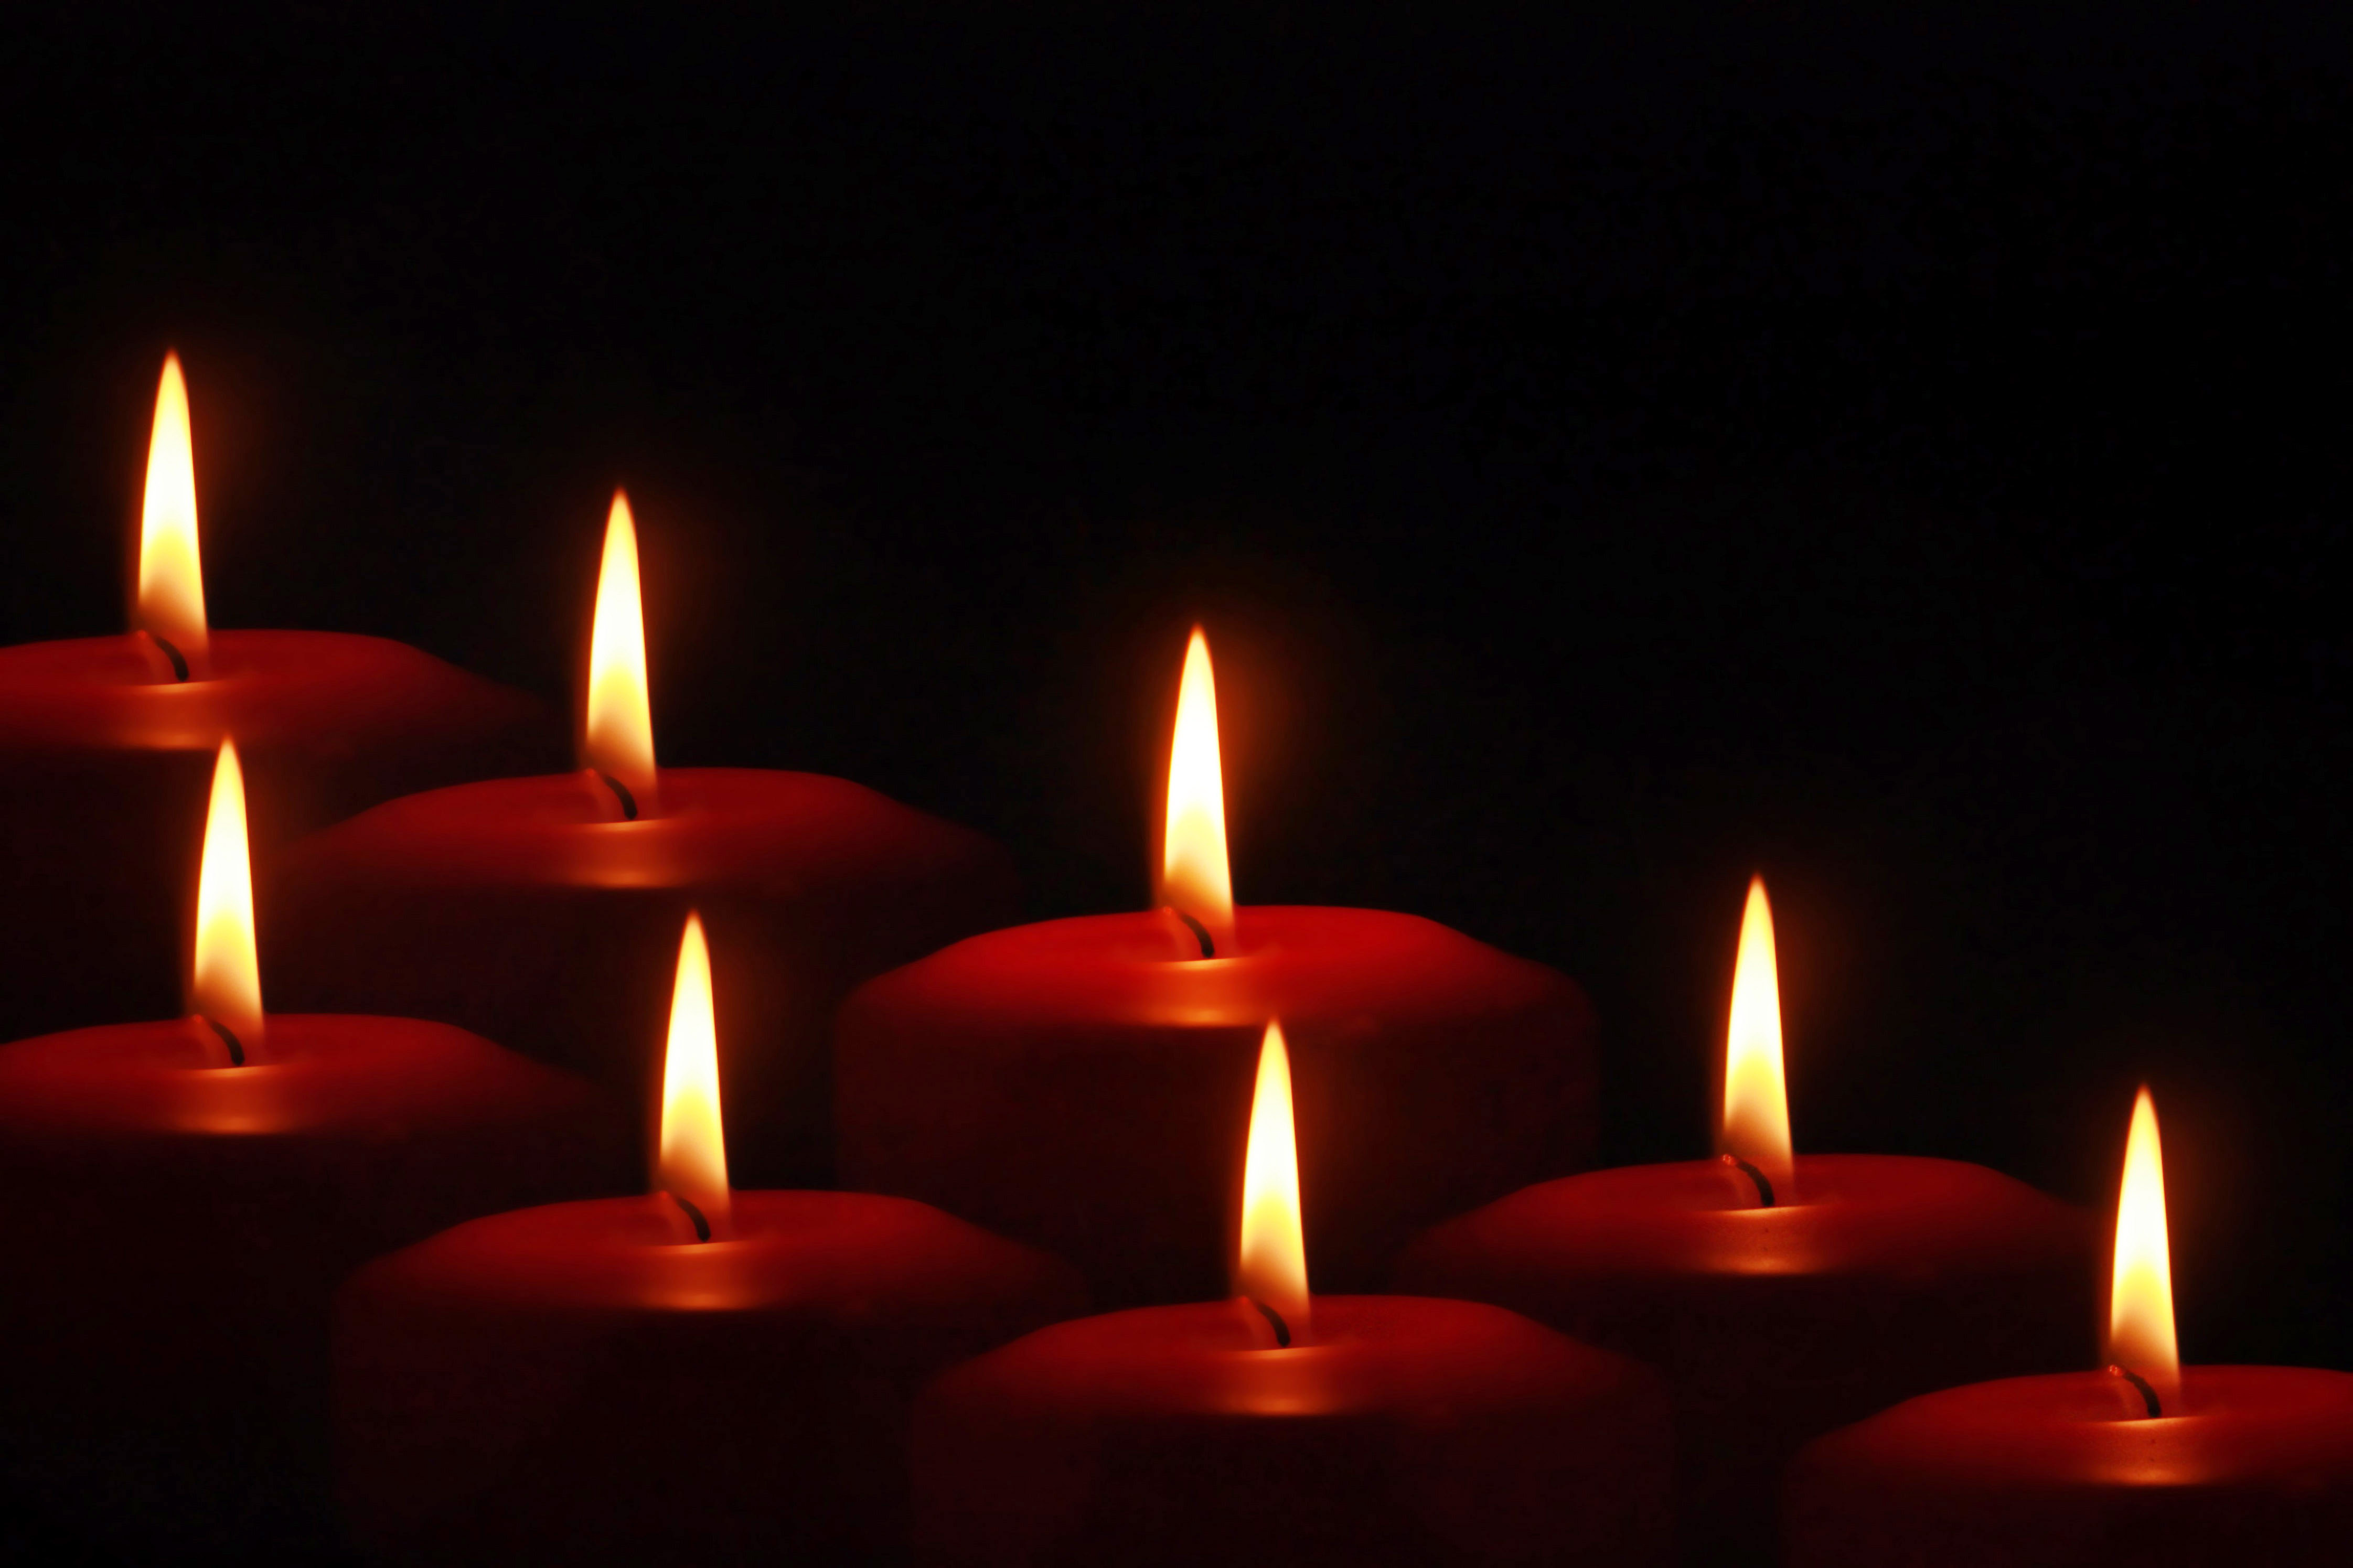 red candles - 5 - In Decors